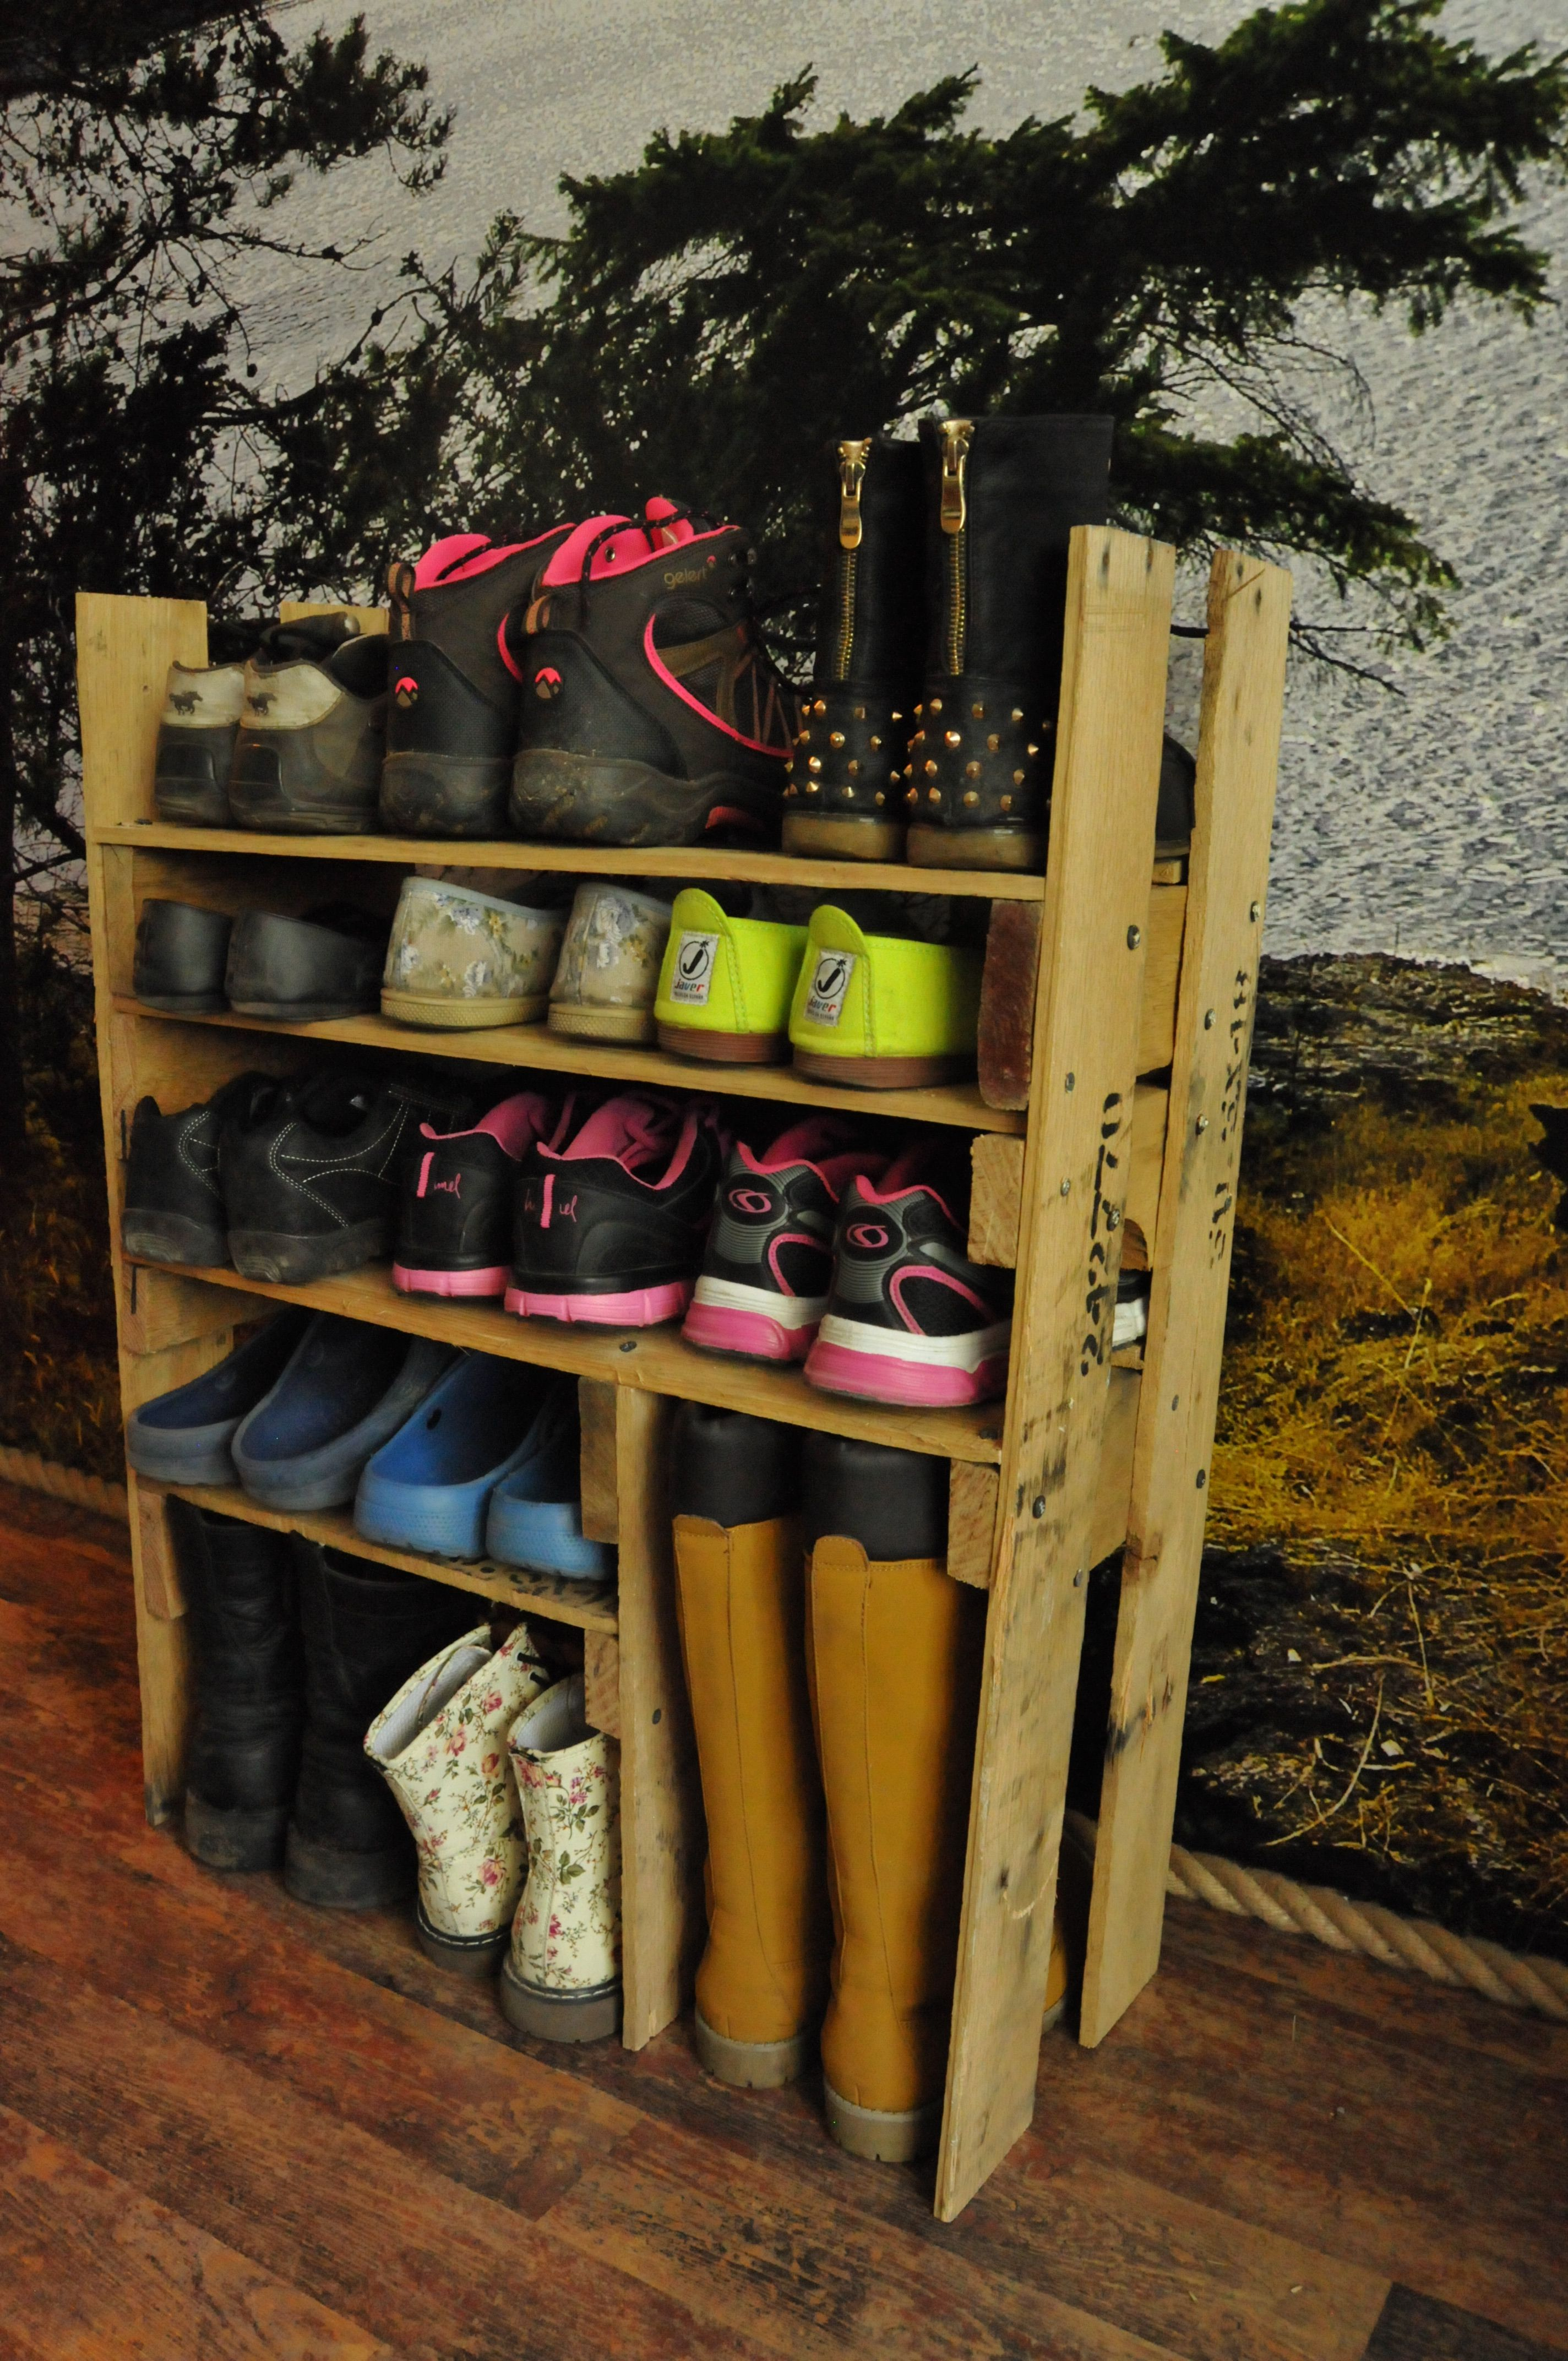 diy shoe shelf from pallets recycled pallets ideas. Black Bedroom Furniture Sets. Home Design Ideas